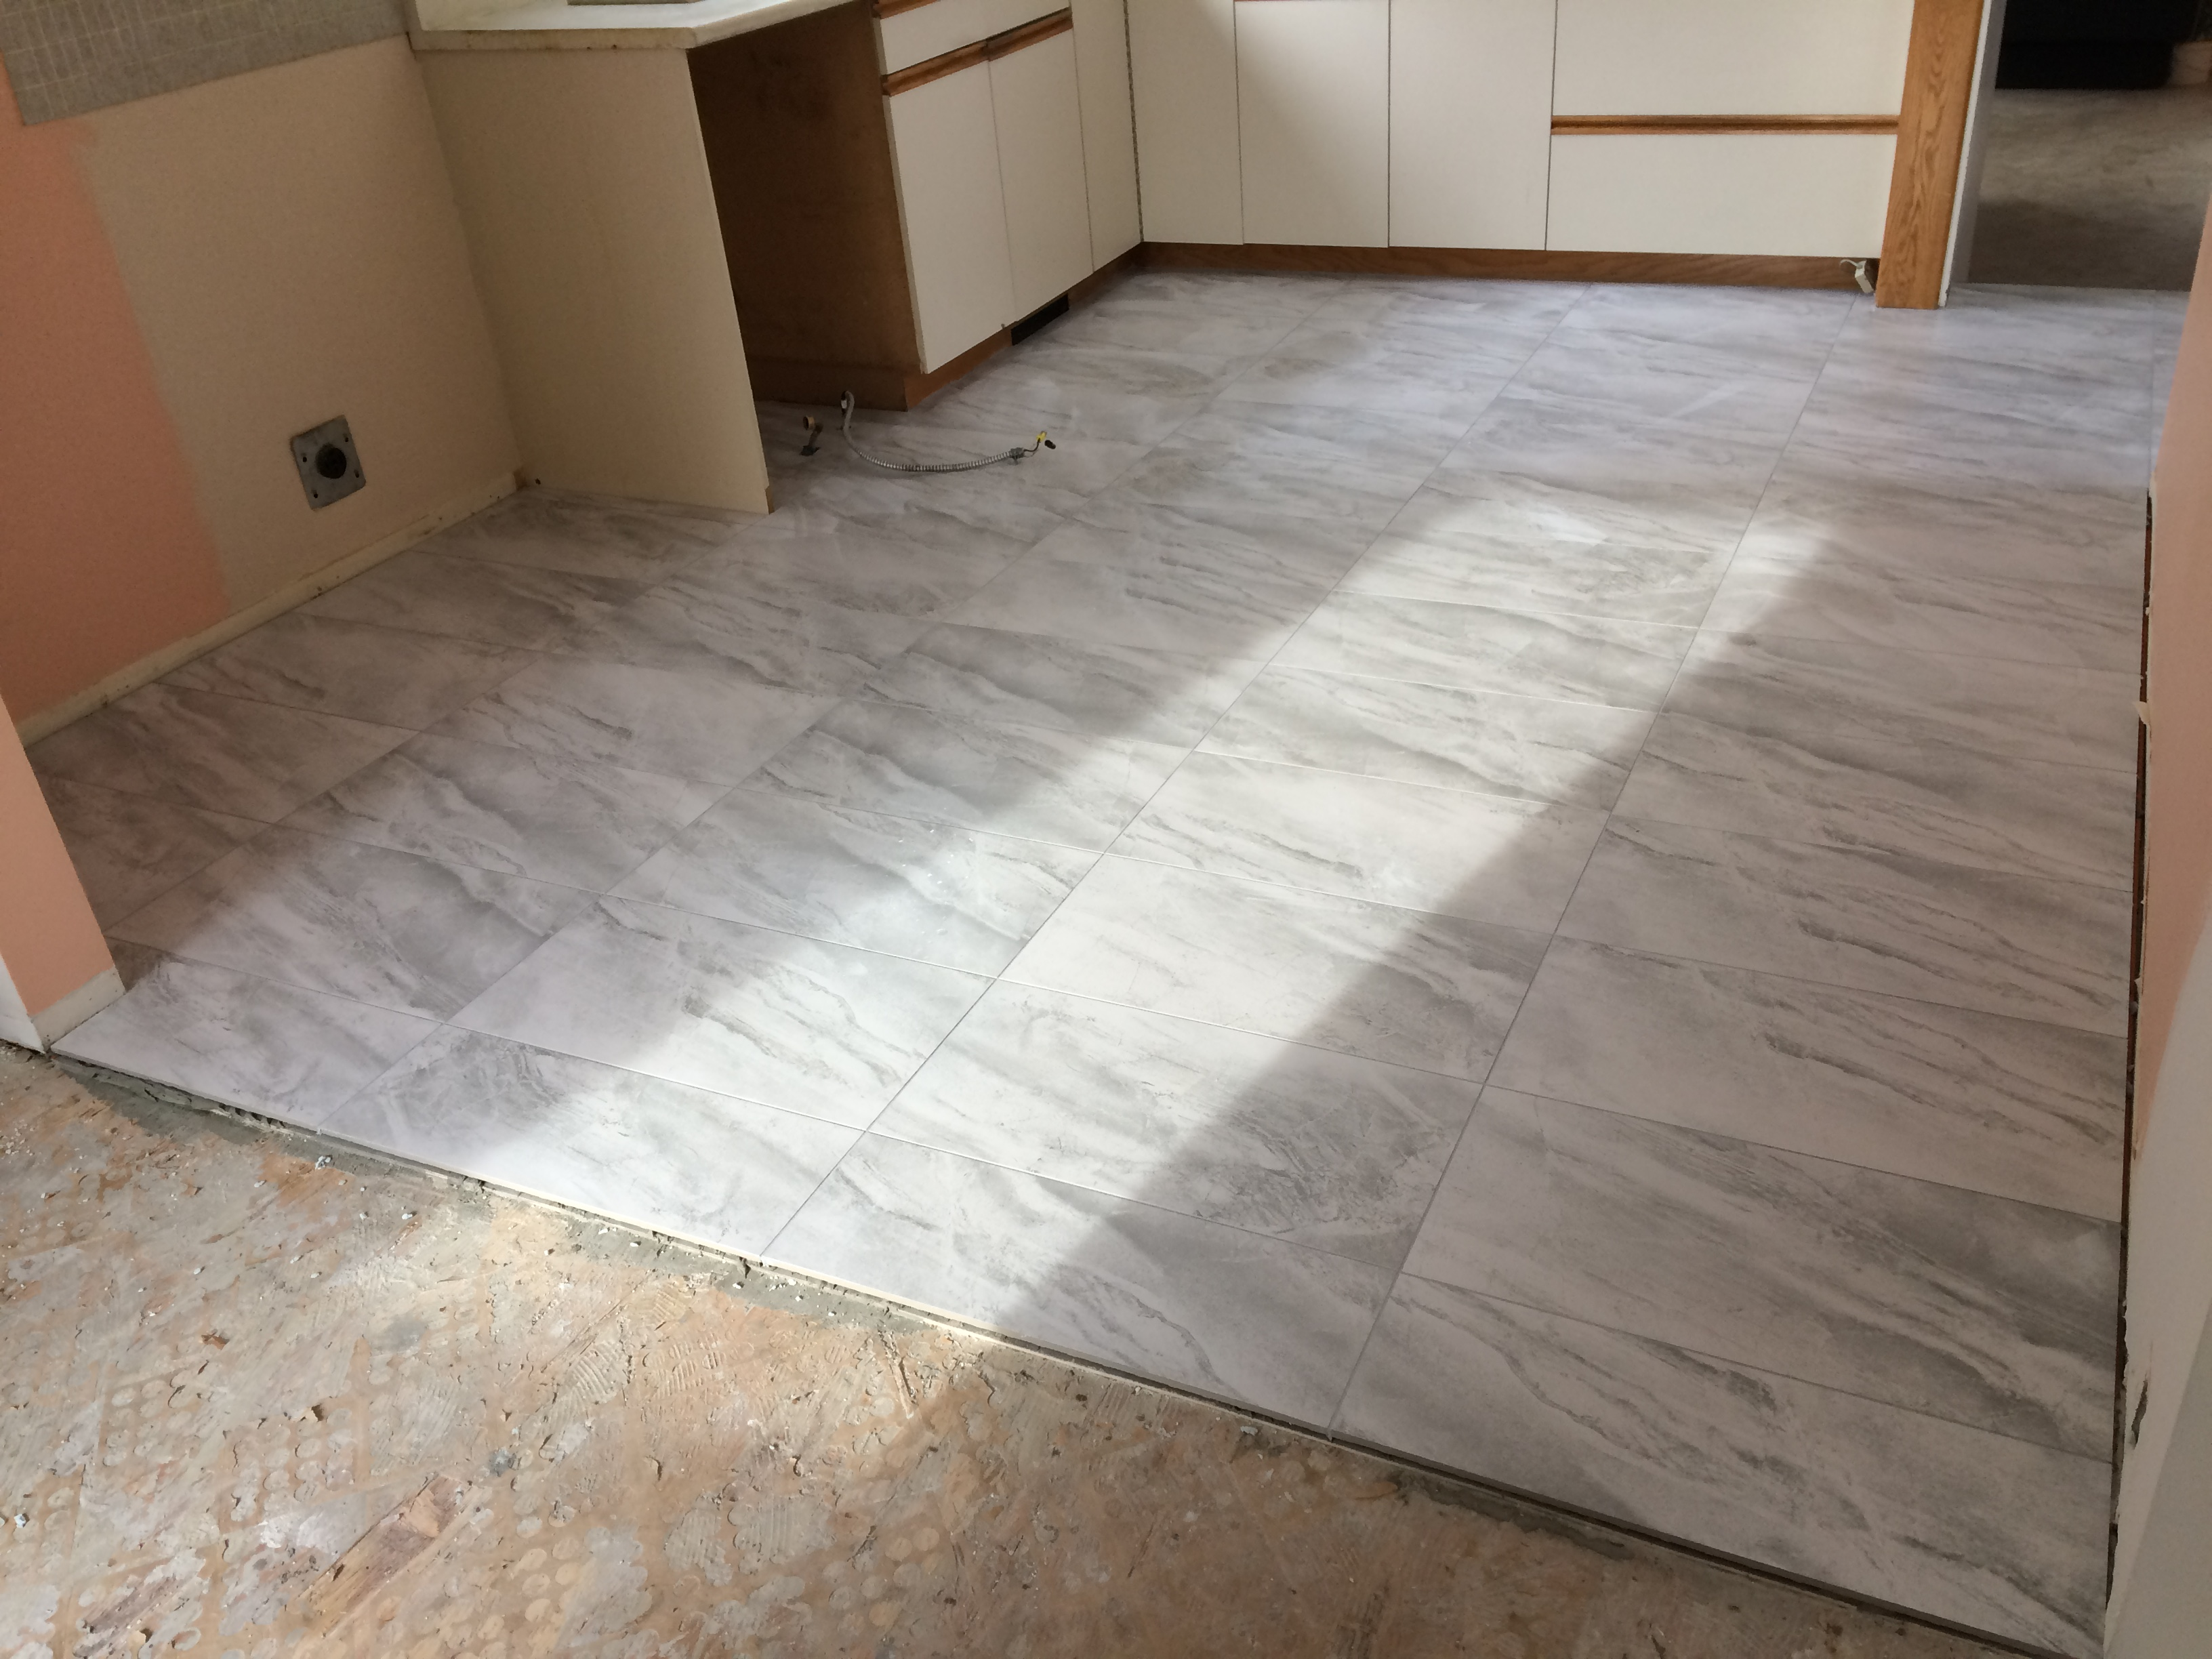 Kitchen floor replacement (after)